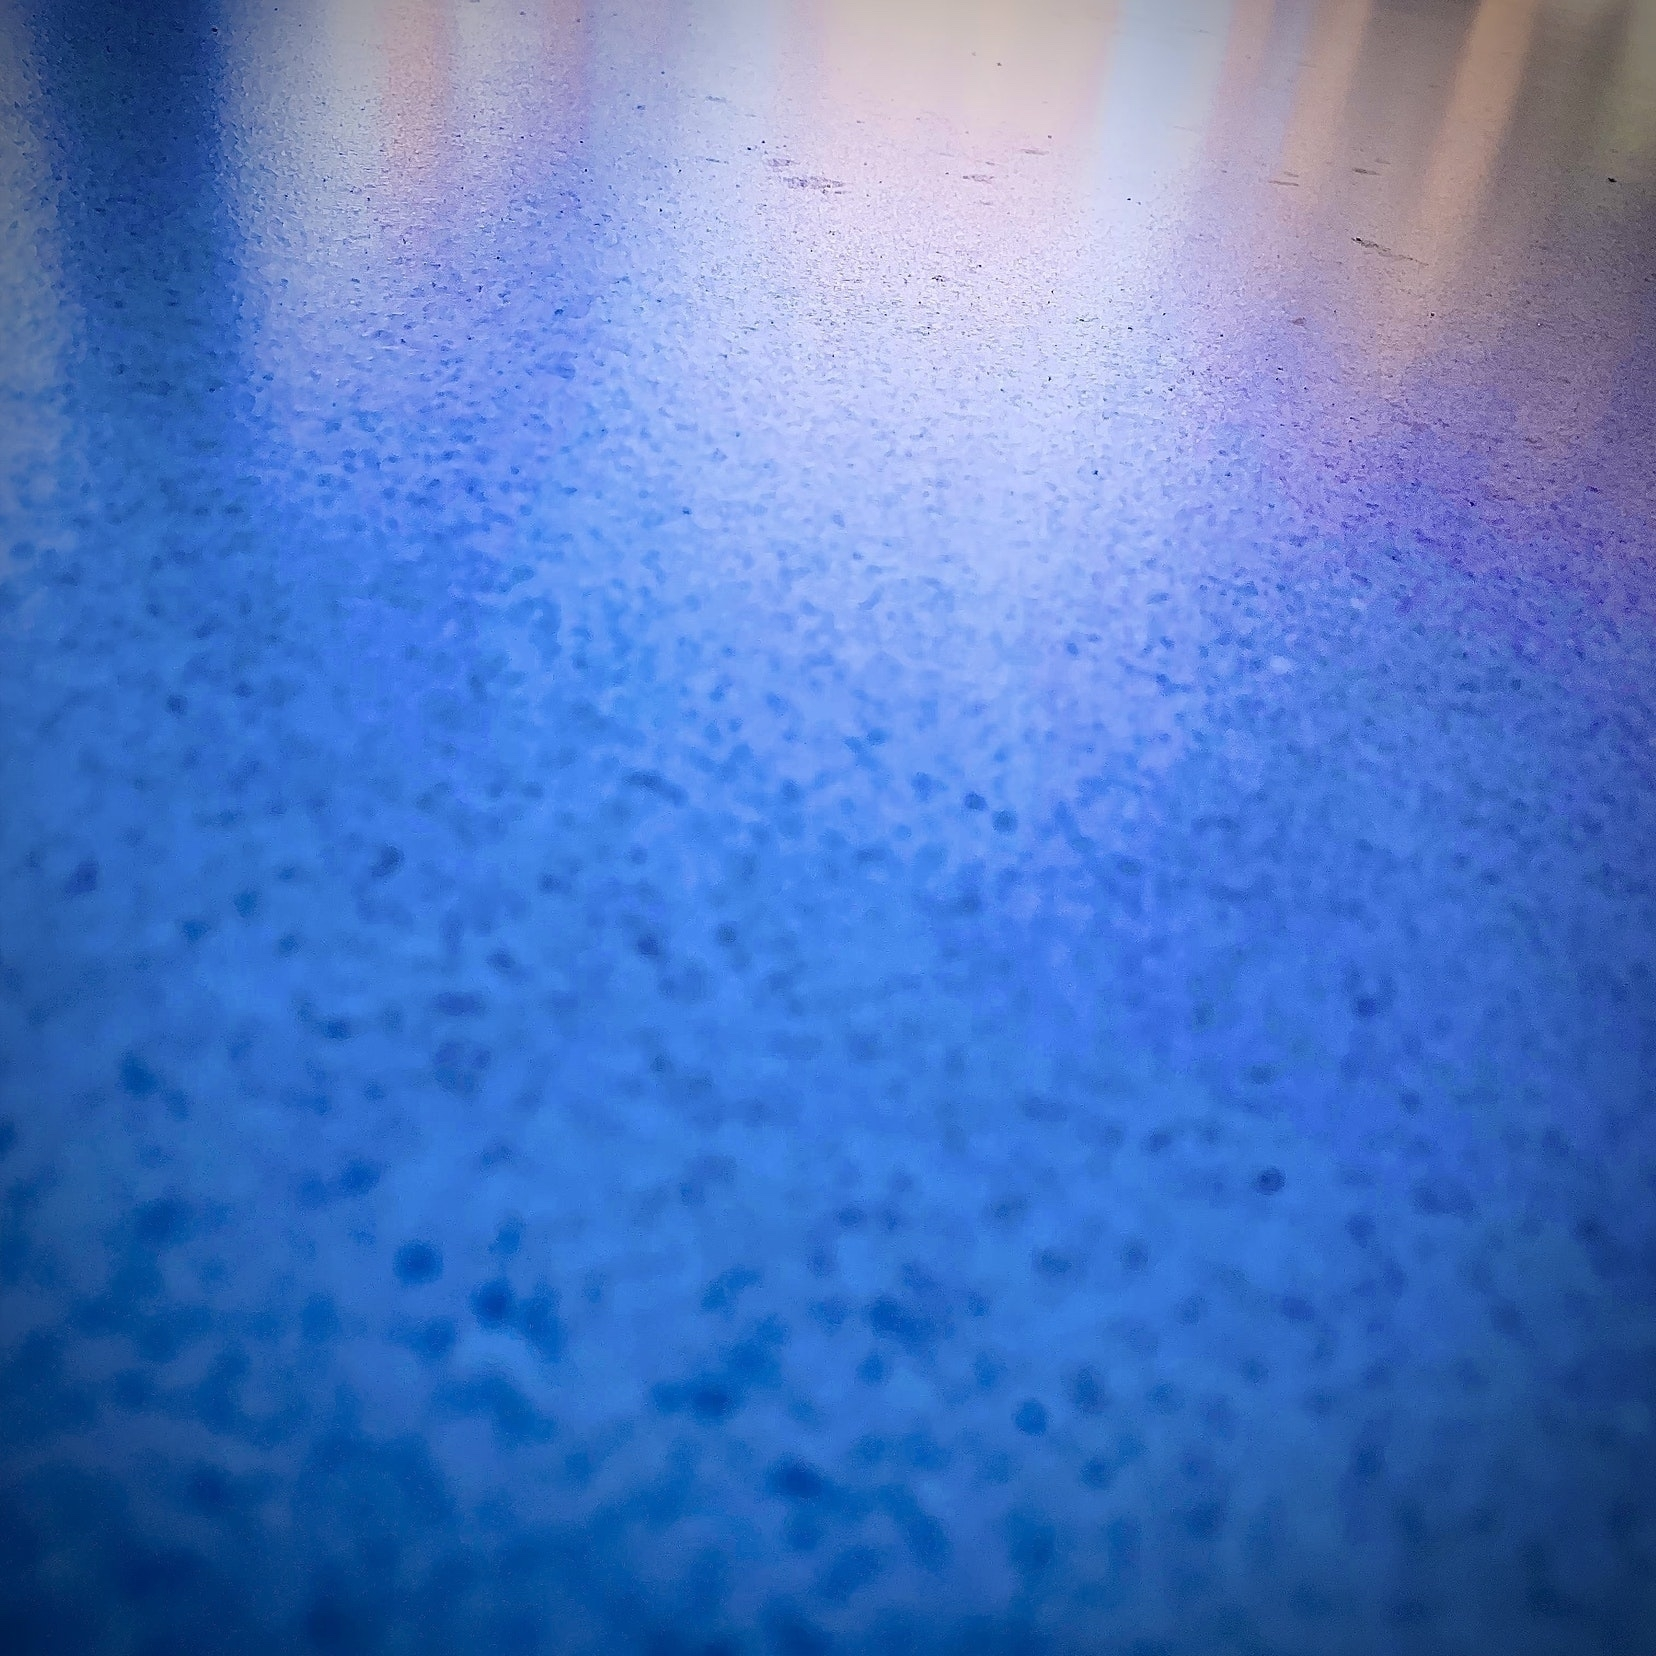 Abstract of stone table top with intense saturation